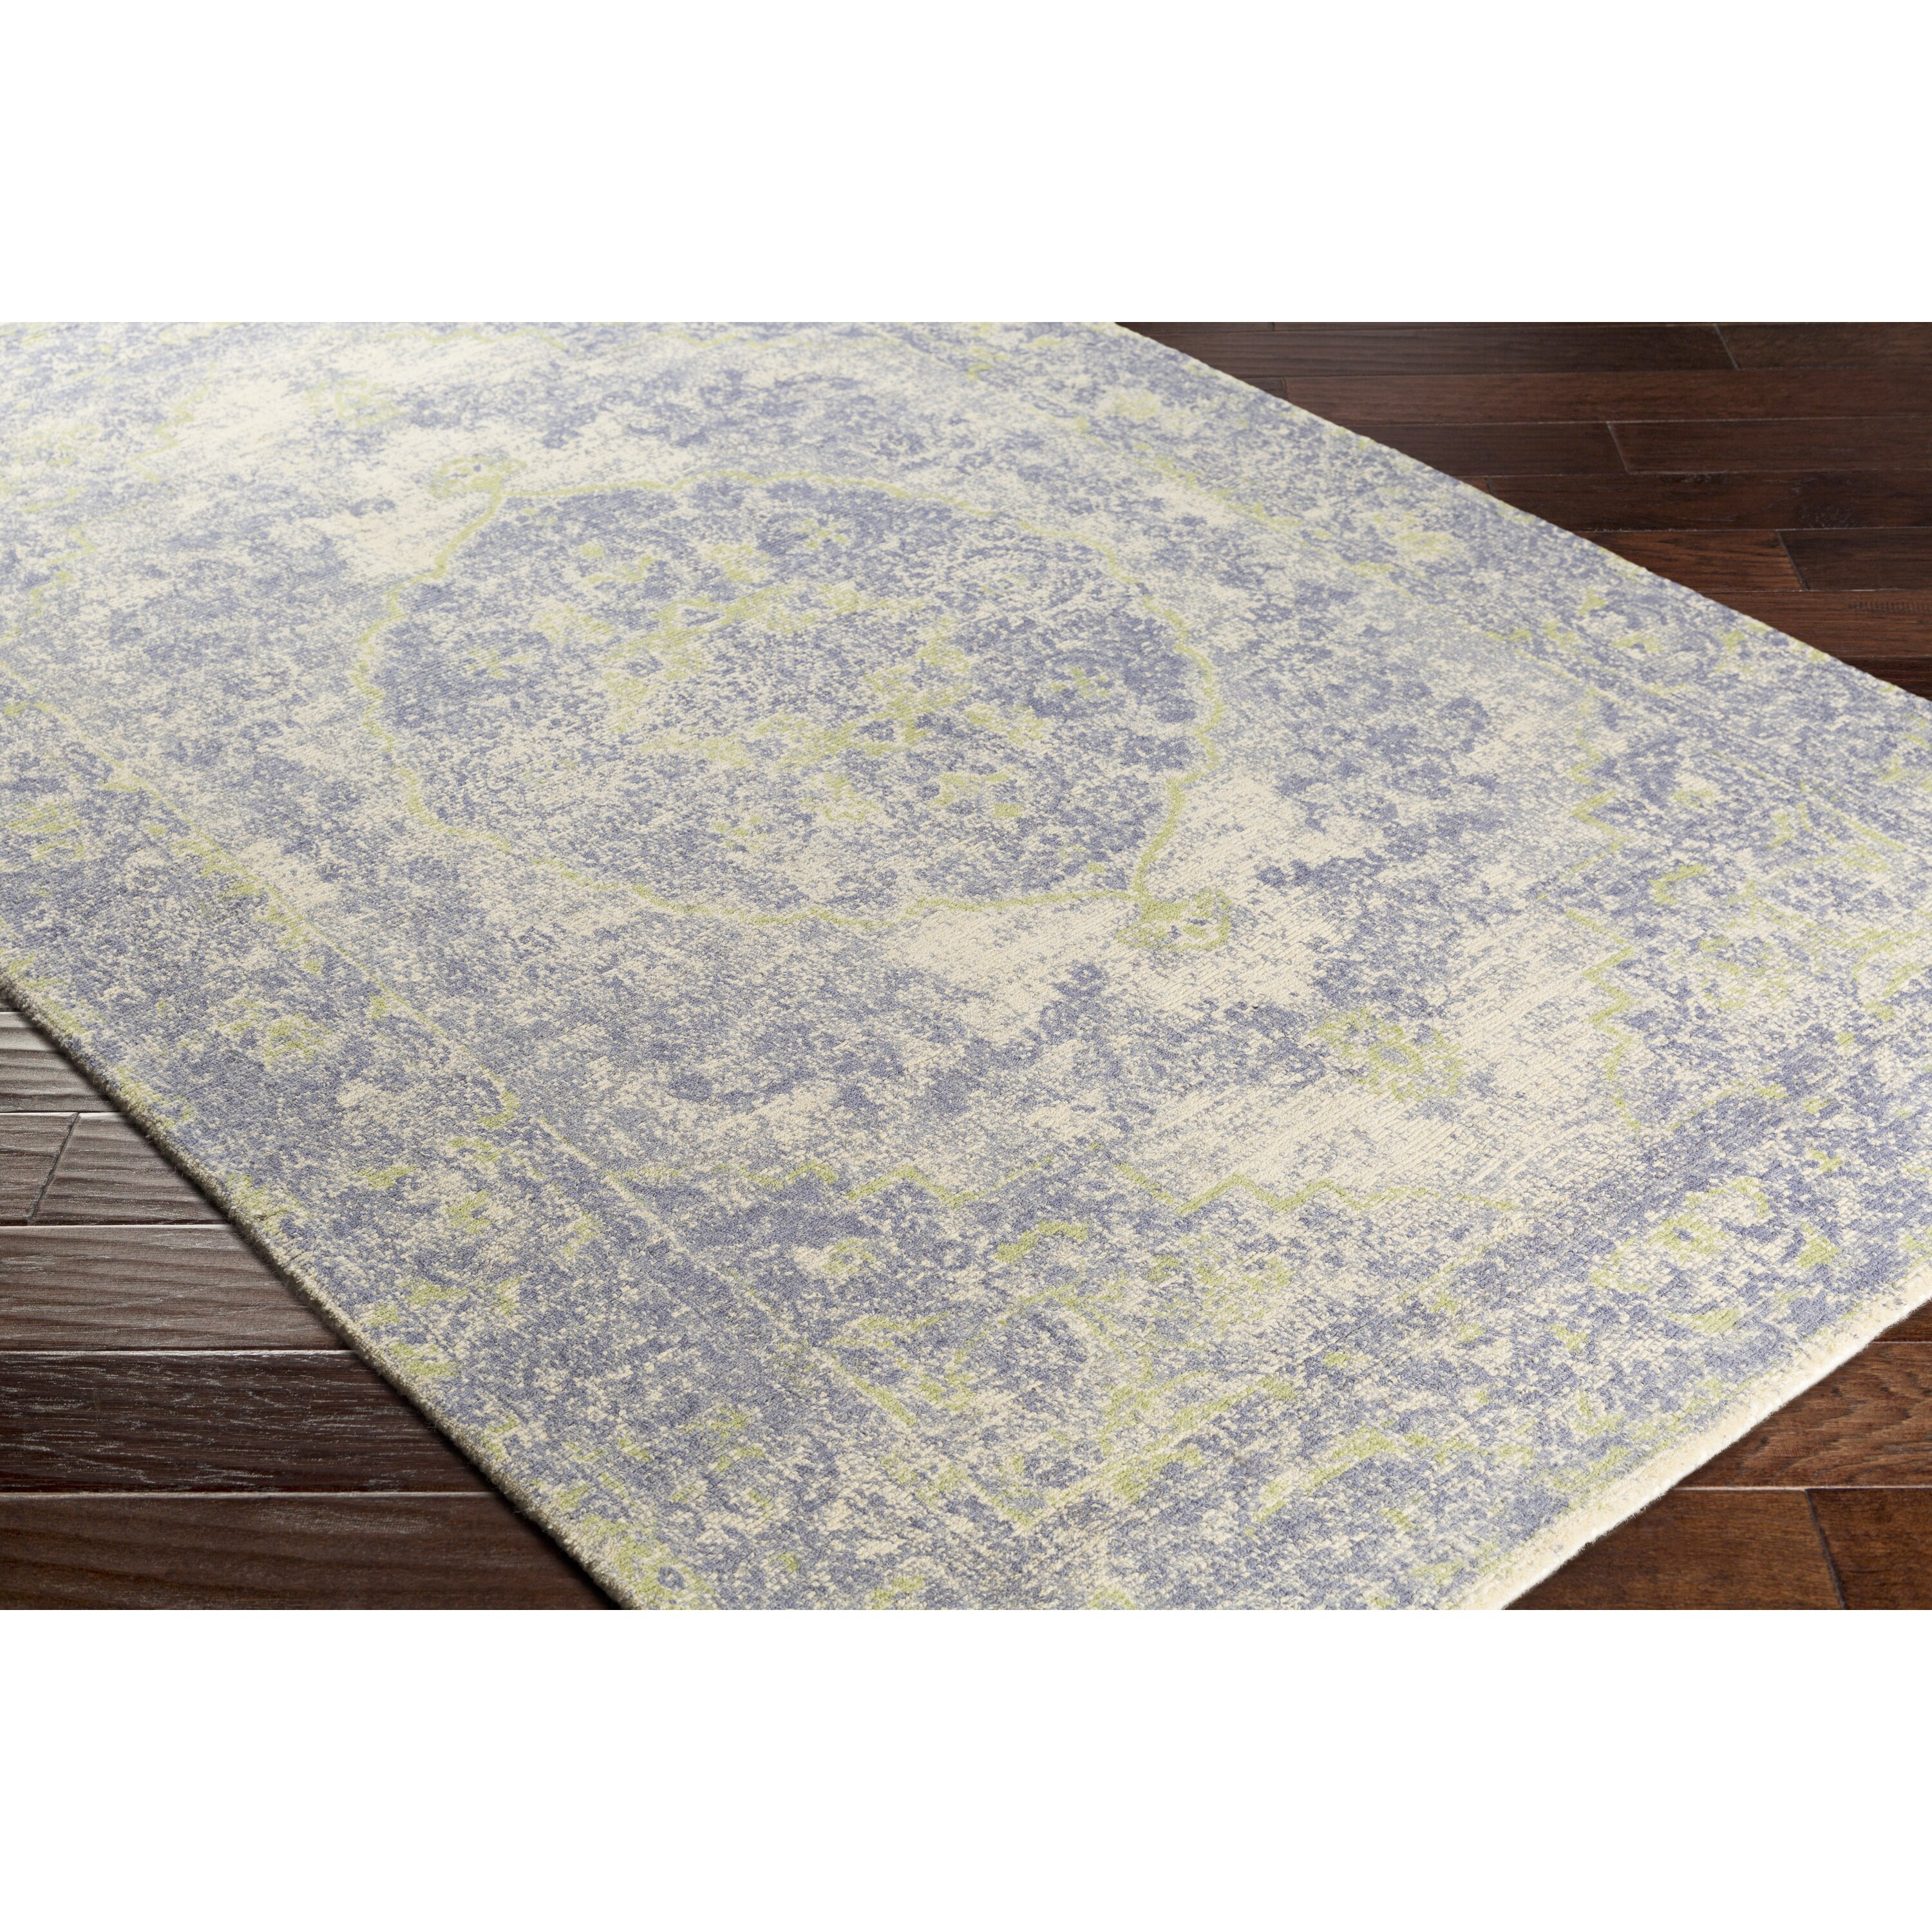 Bungalow Rose Anselma Handloomed Neutralblue Area Rug. Is Quartz Cheaper Than Granite. Houstonbackpage. Shower Remodel. Large Kitchen Tables. Kichler. 36 X 60 Mirror. Bathroom Glass. How To Stage Your Home